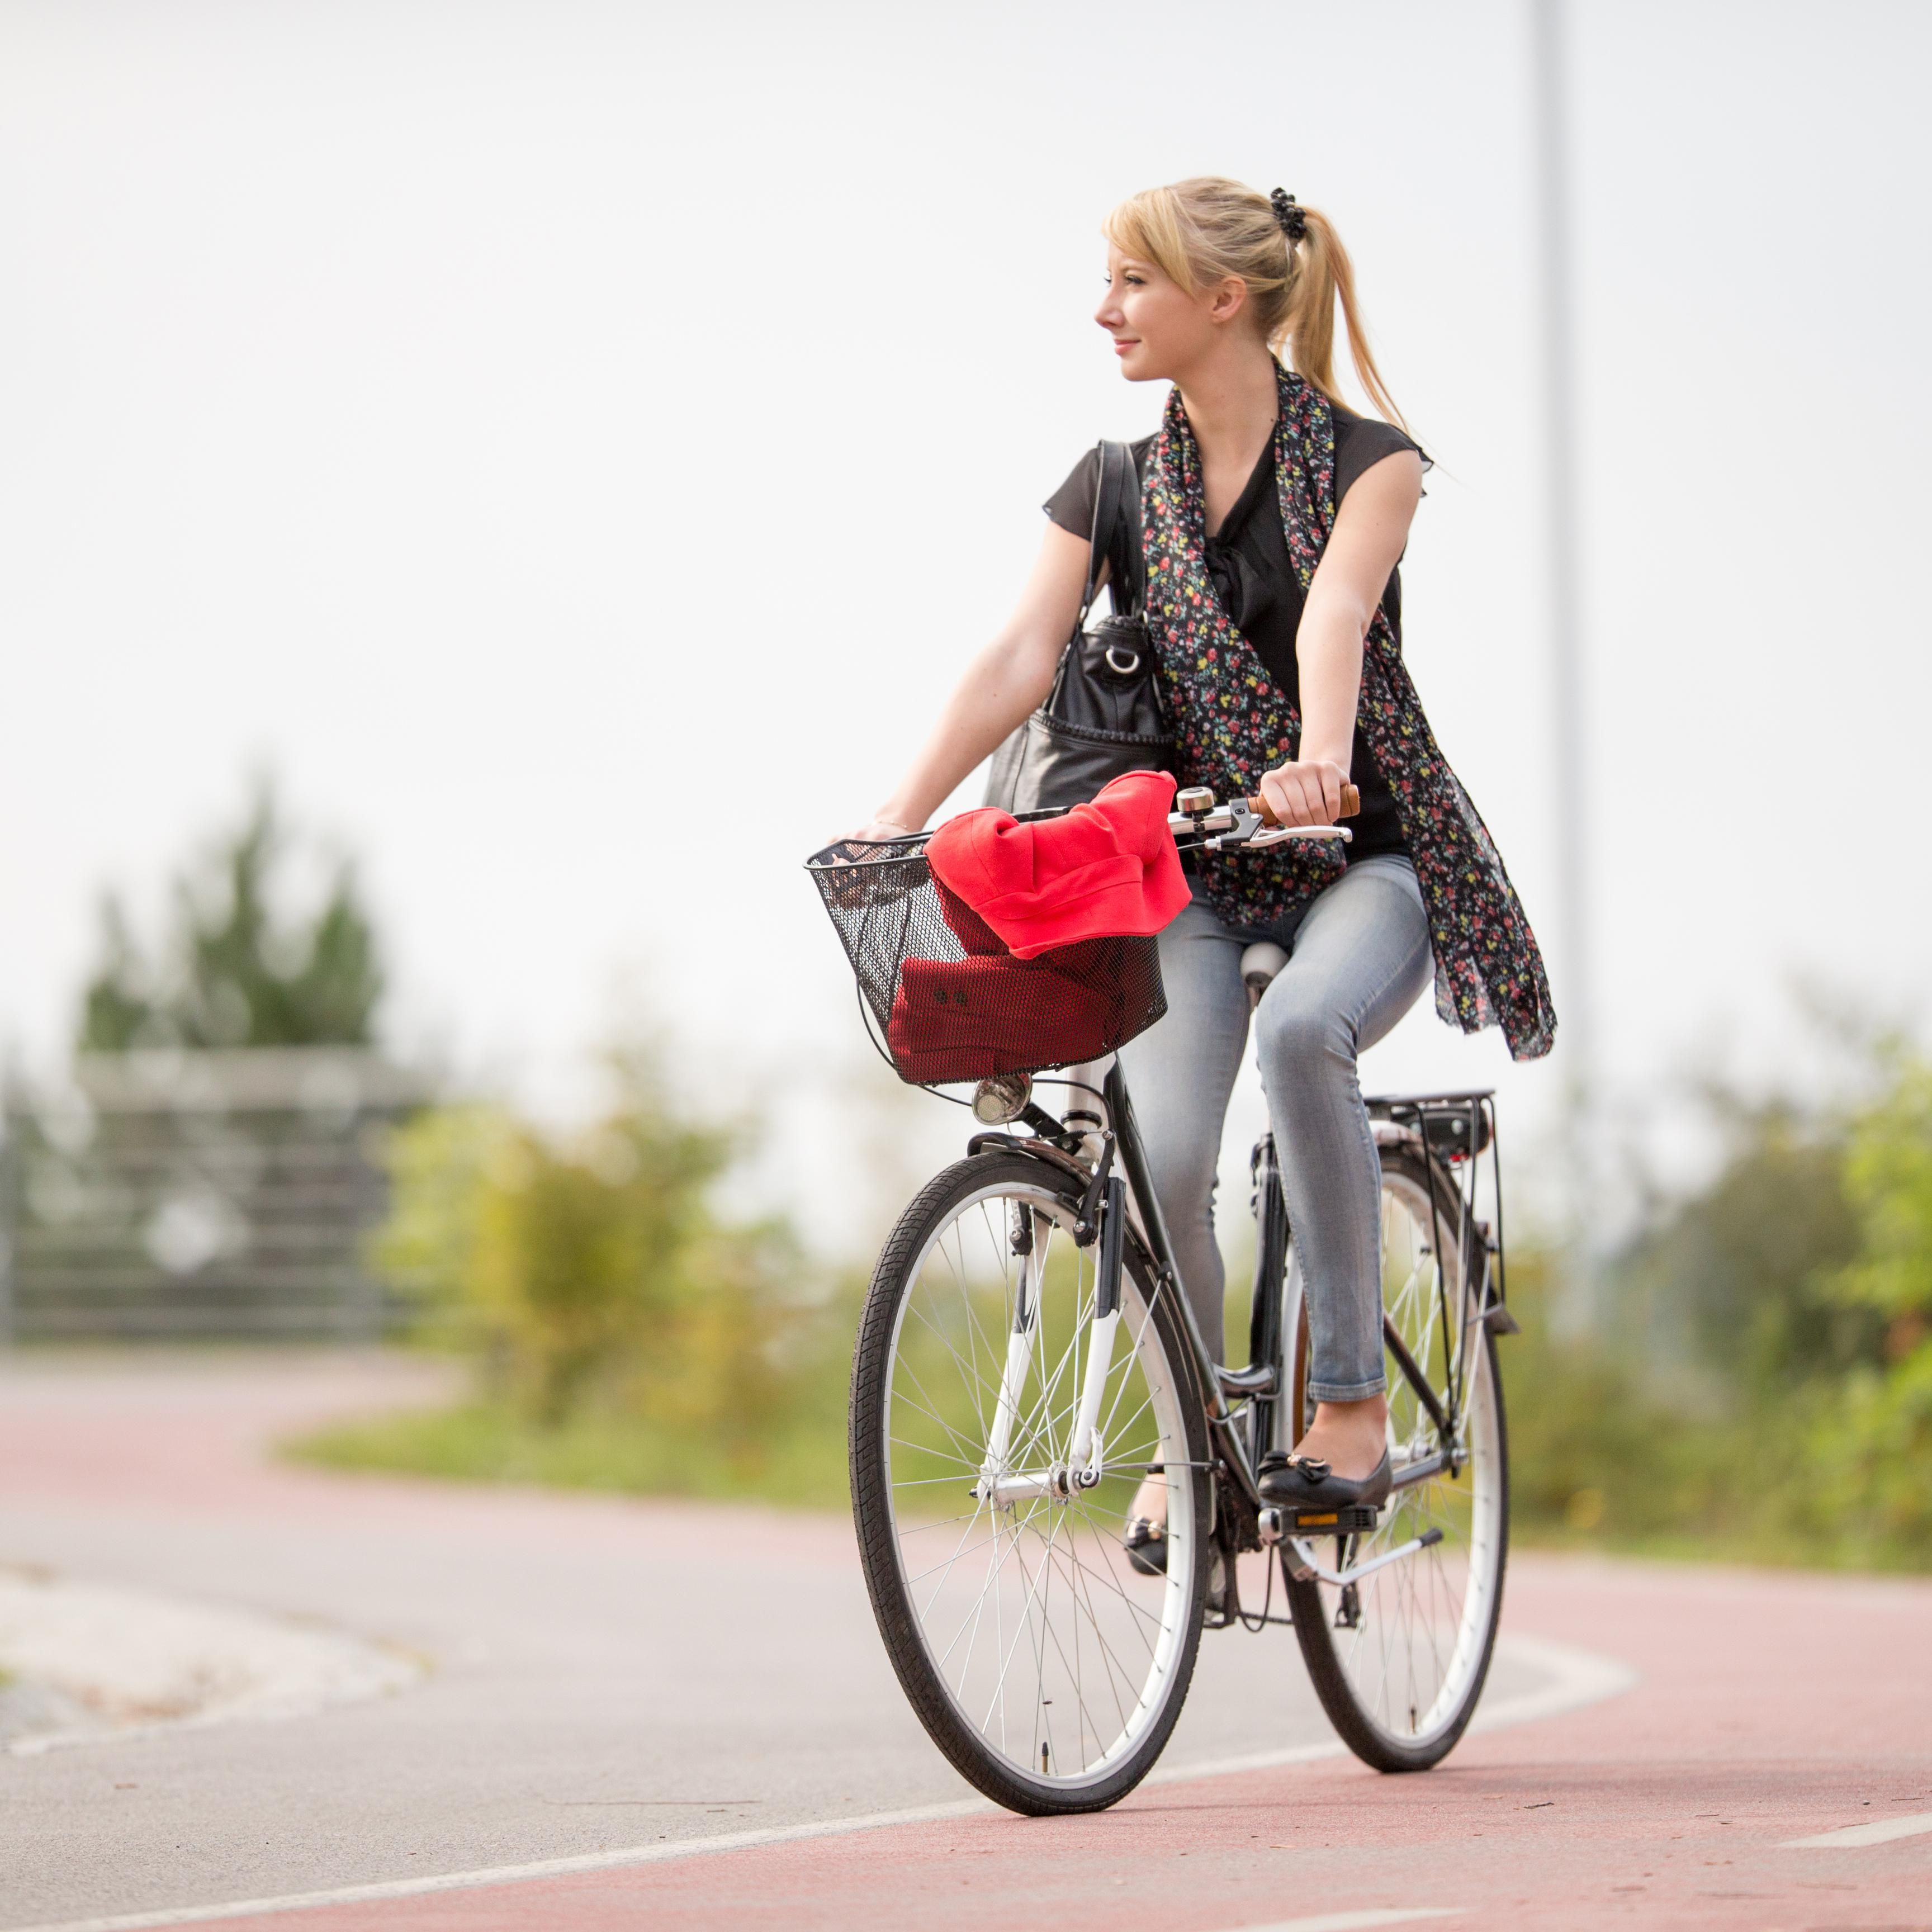 Riding Your Bike to Work